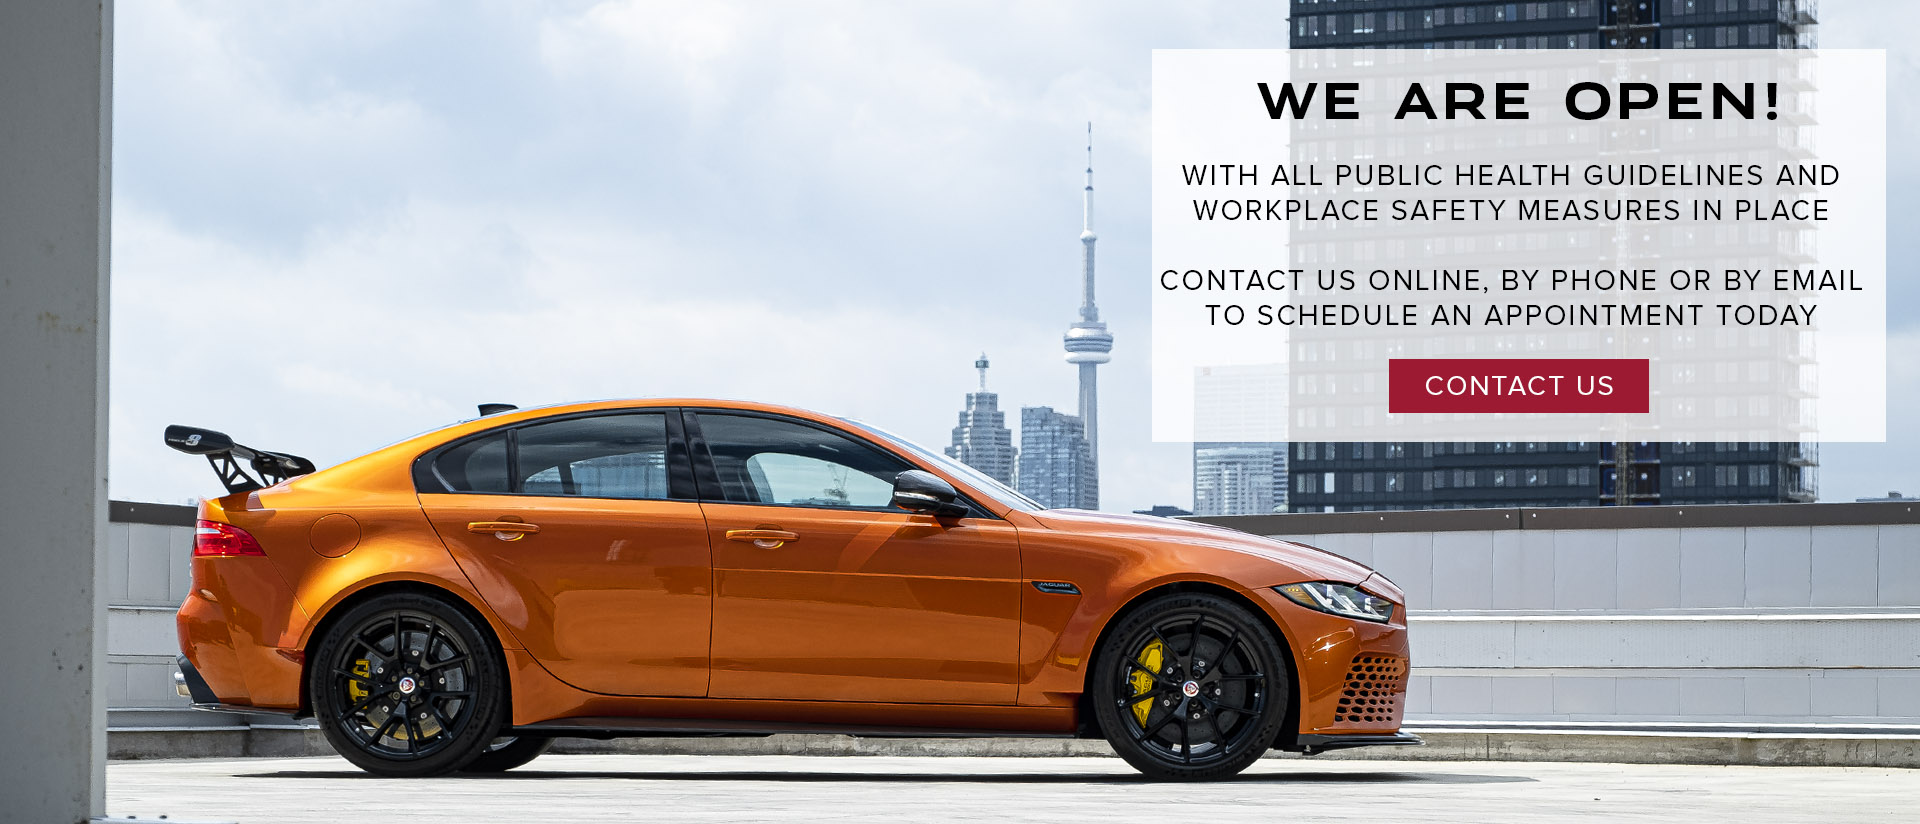 Jaguar Covid Open By Appointment Only